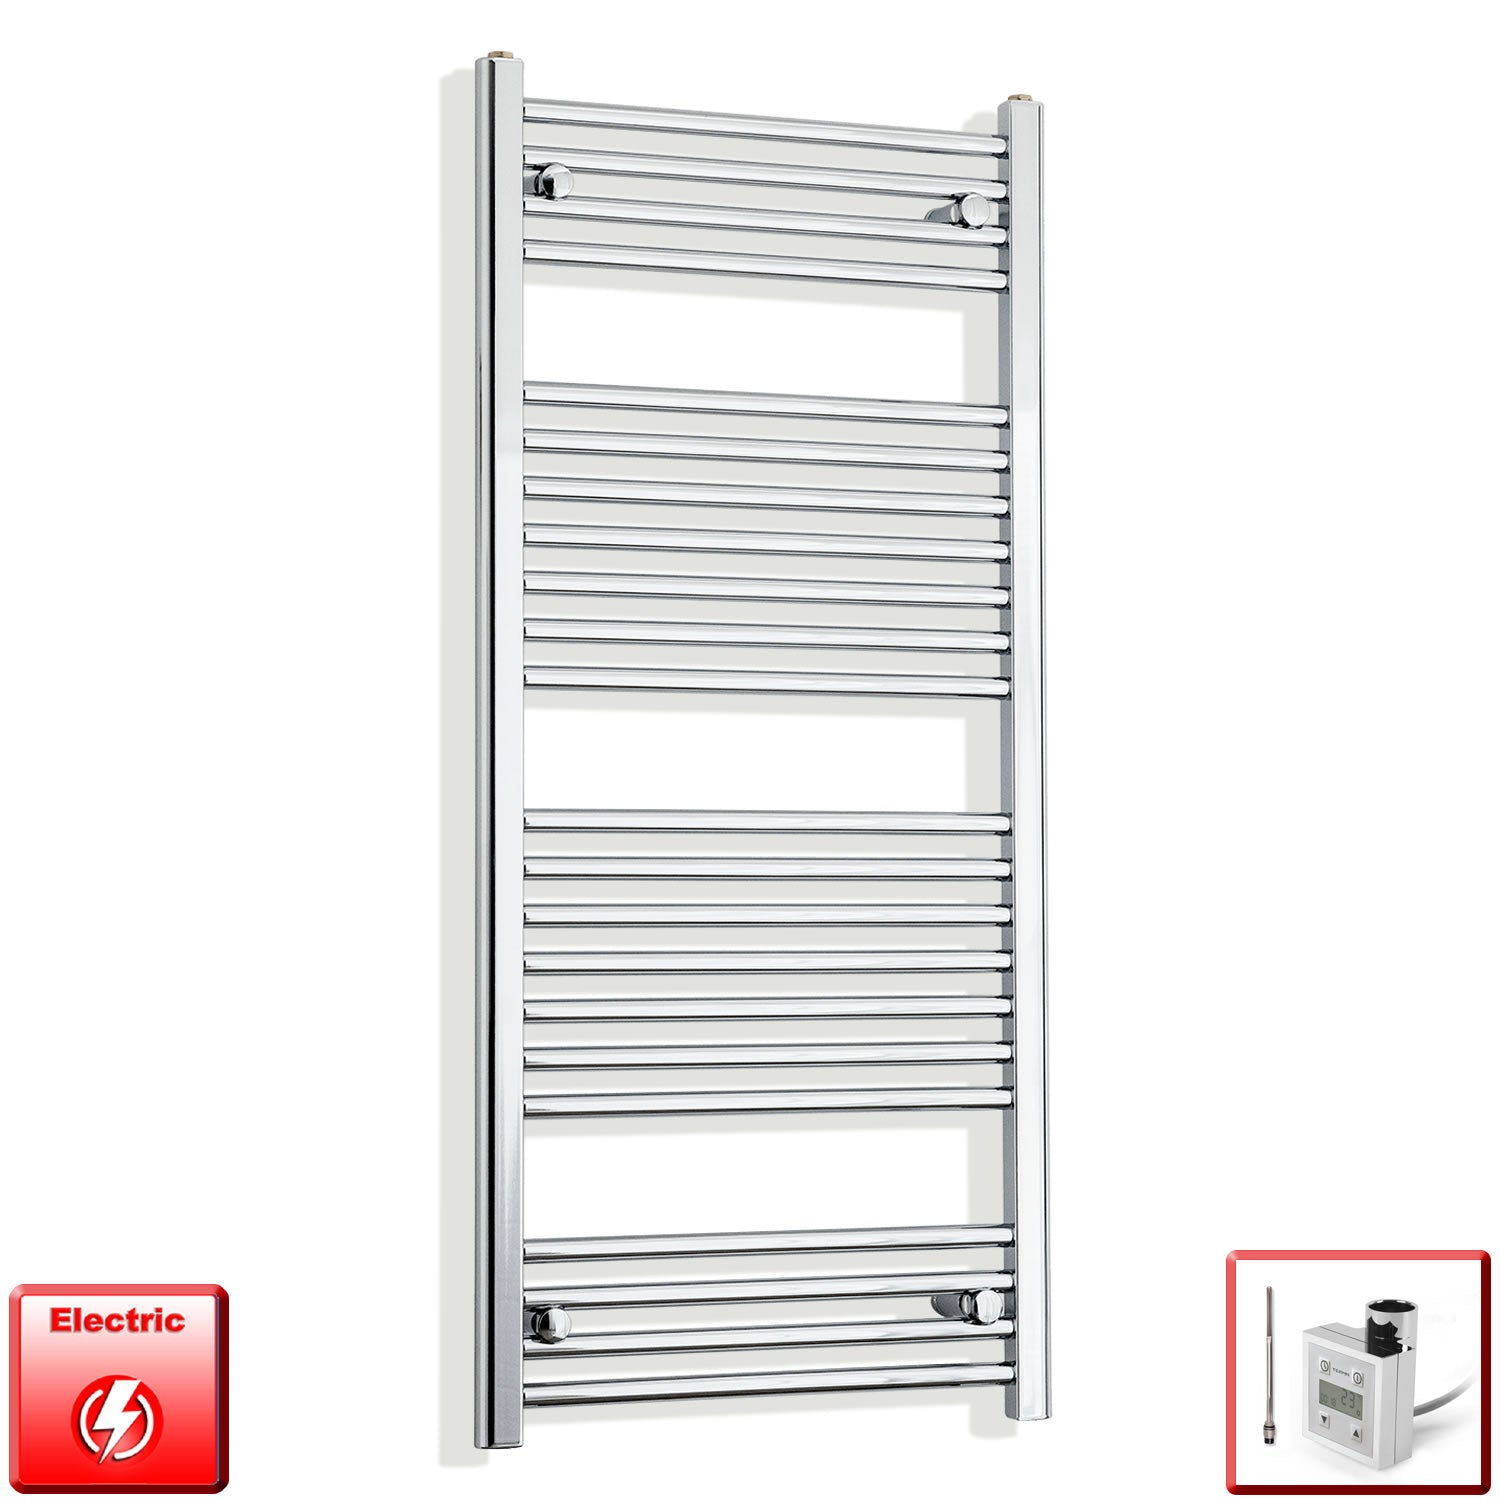 600mm Wide 1200mm High Pre-Filled Chrome Electric Towel Rail Radiator With Thermostatic KTX3 Element